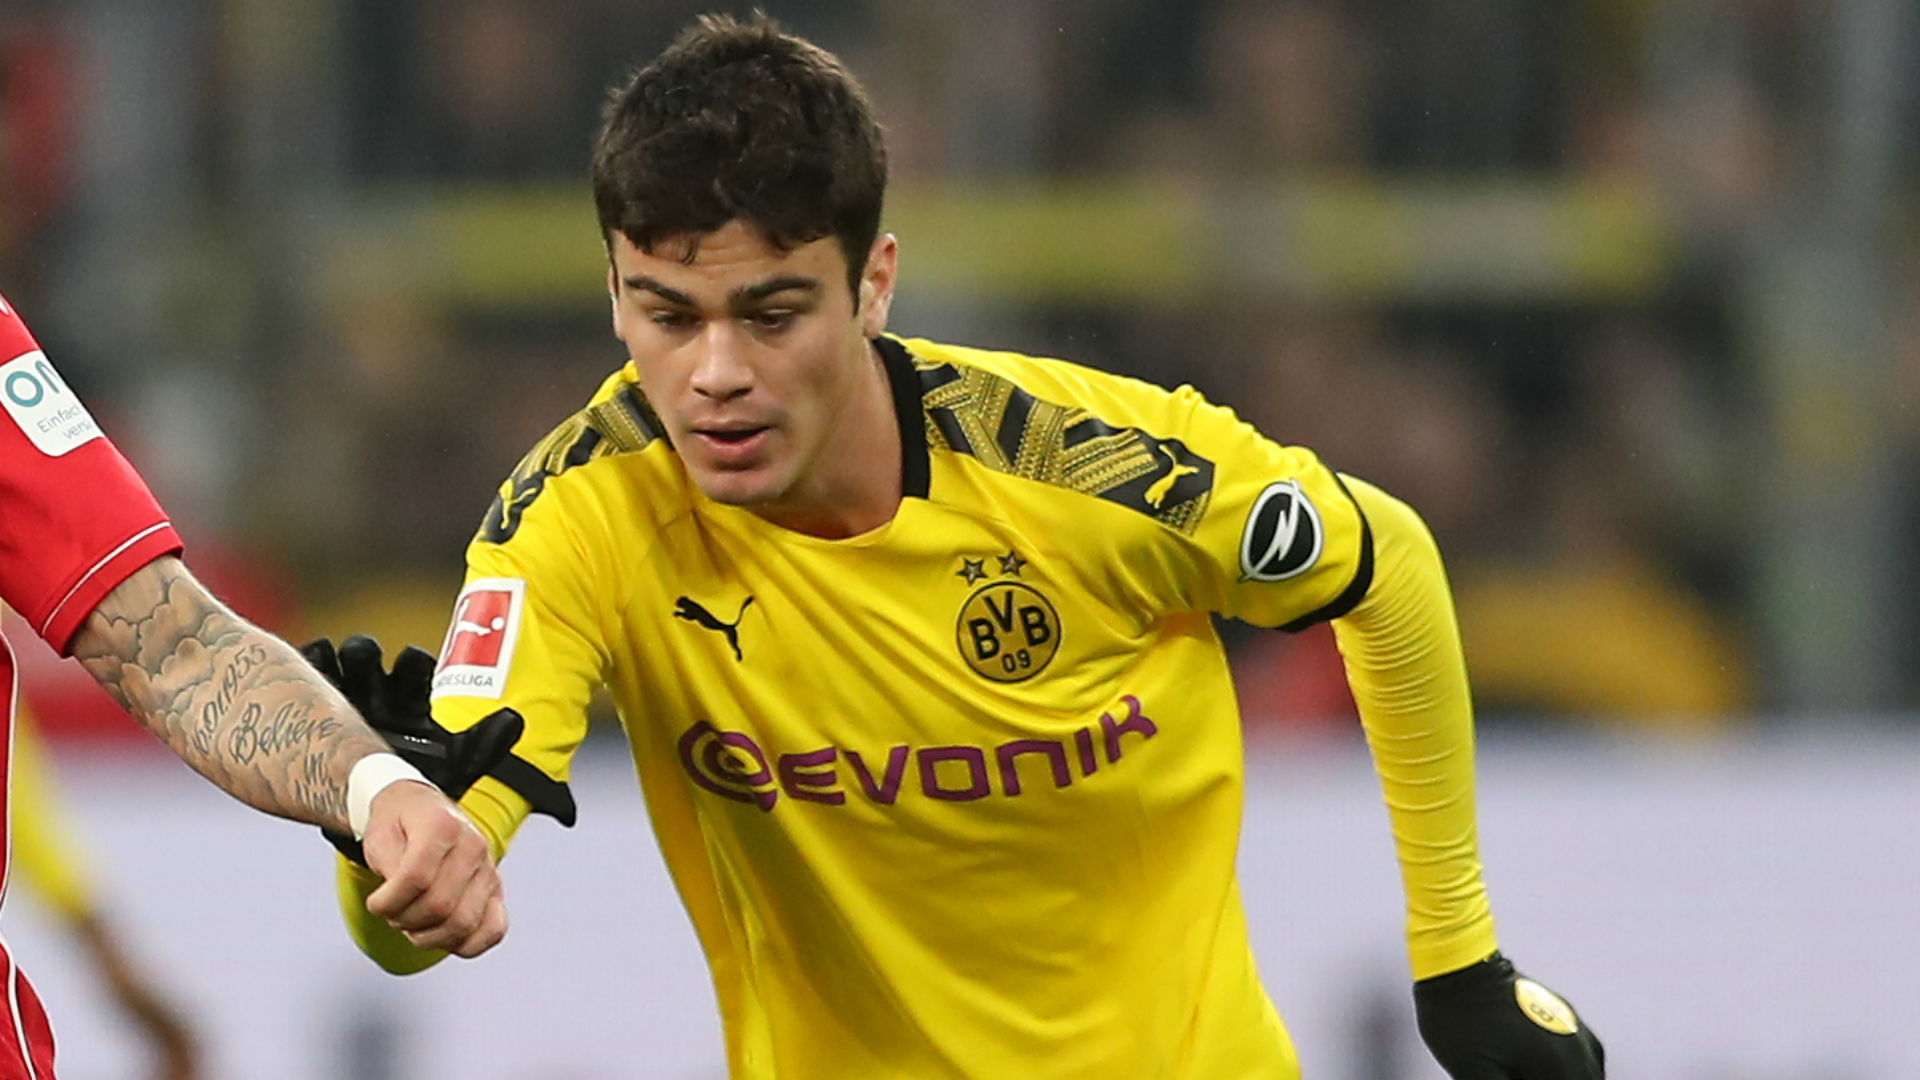 Dortmund's Gio Reyna becomes youngest scorer in DFB-Pokal history